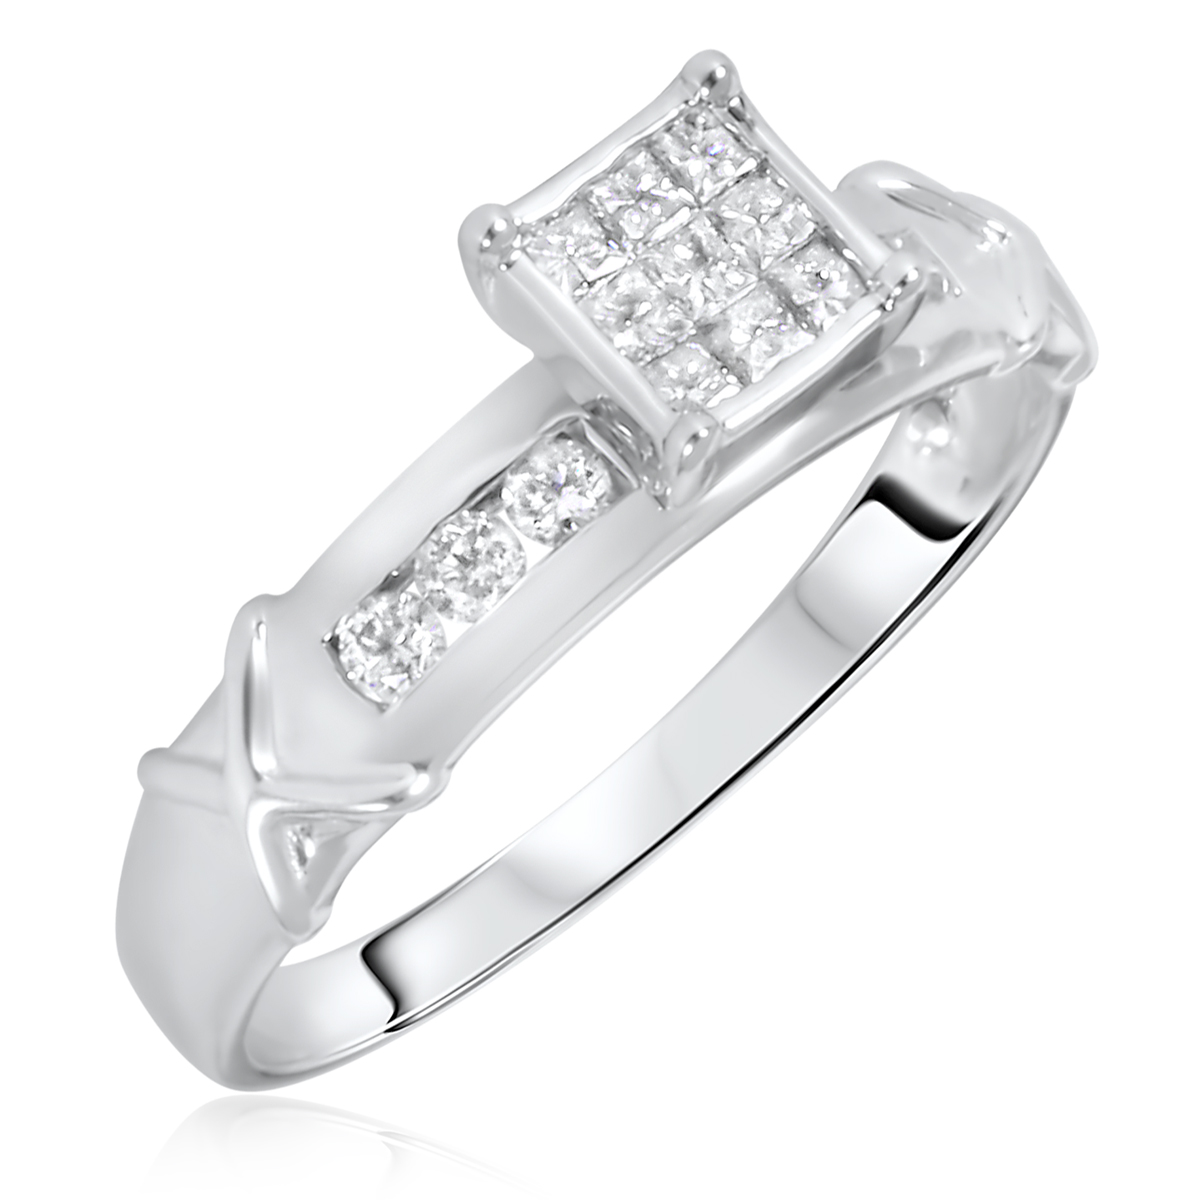 Women39;s Engagement Ring 14K White Gold  My Trio Rings  BT110W14KE